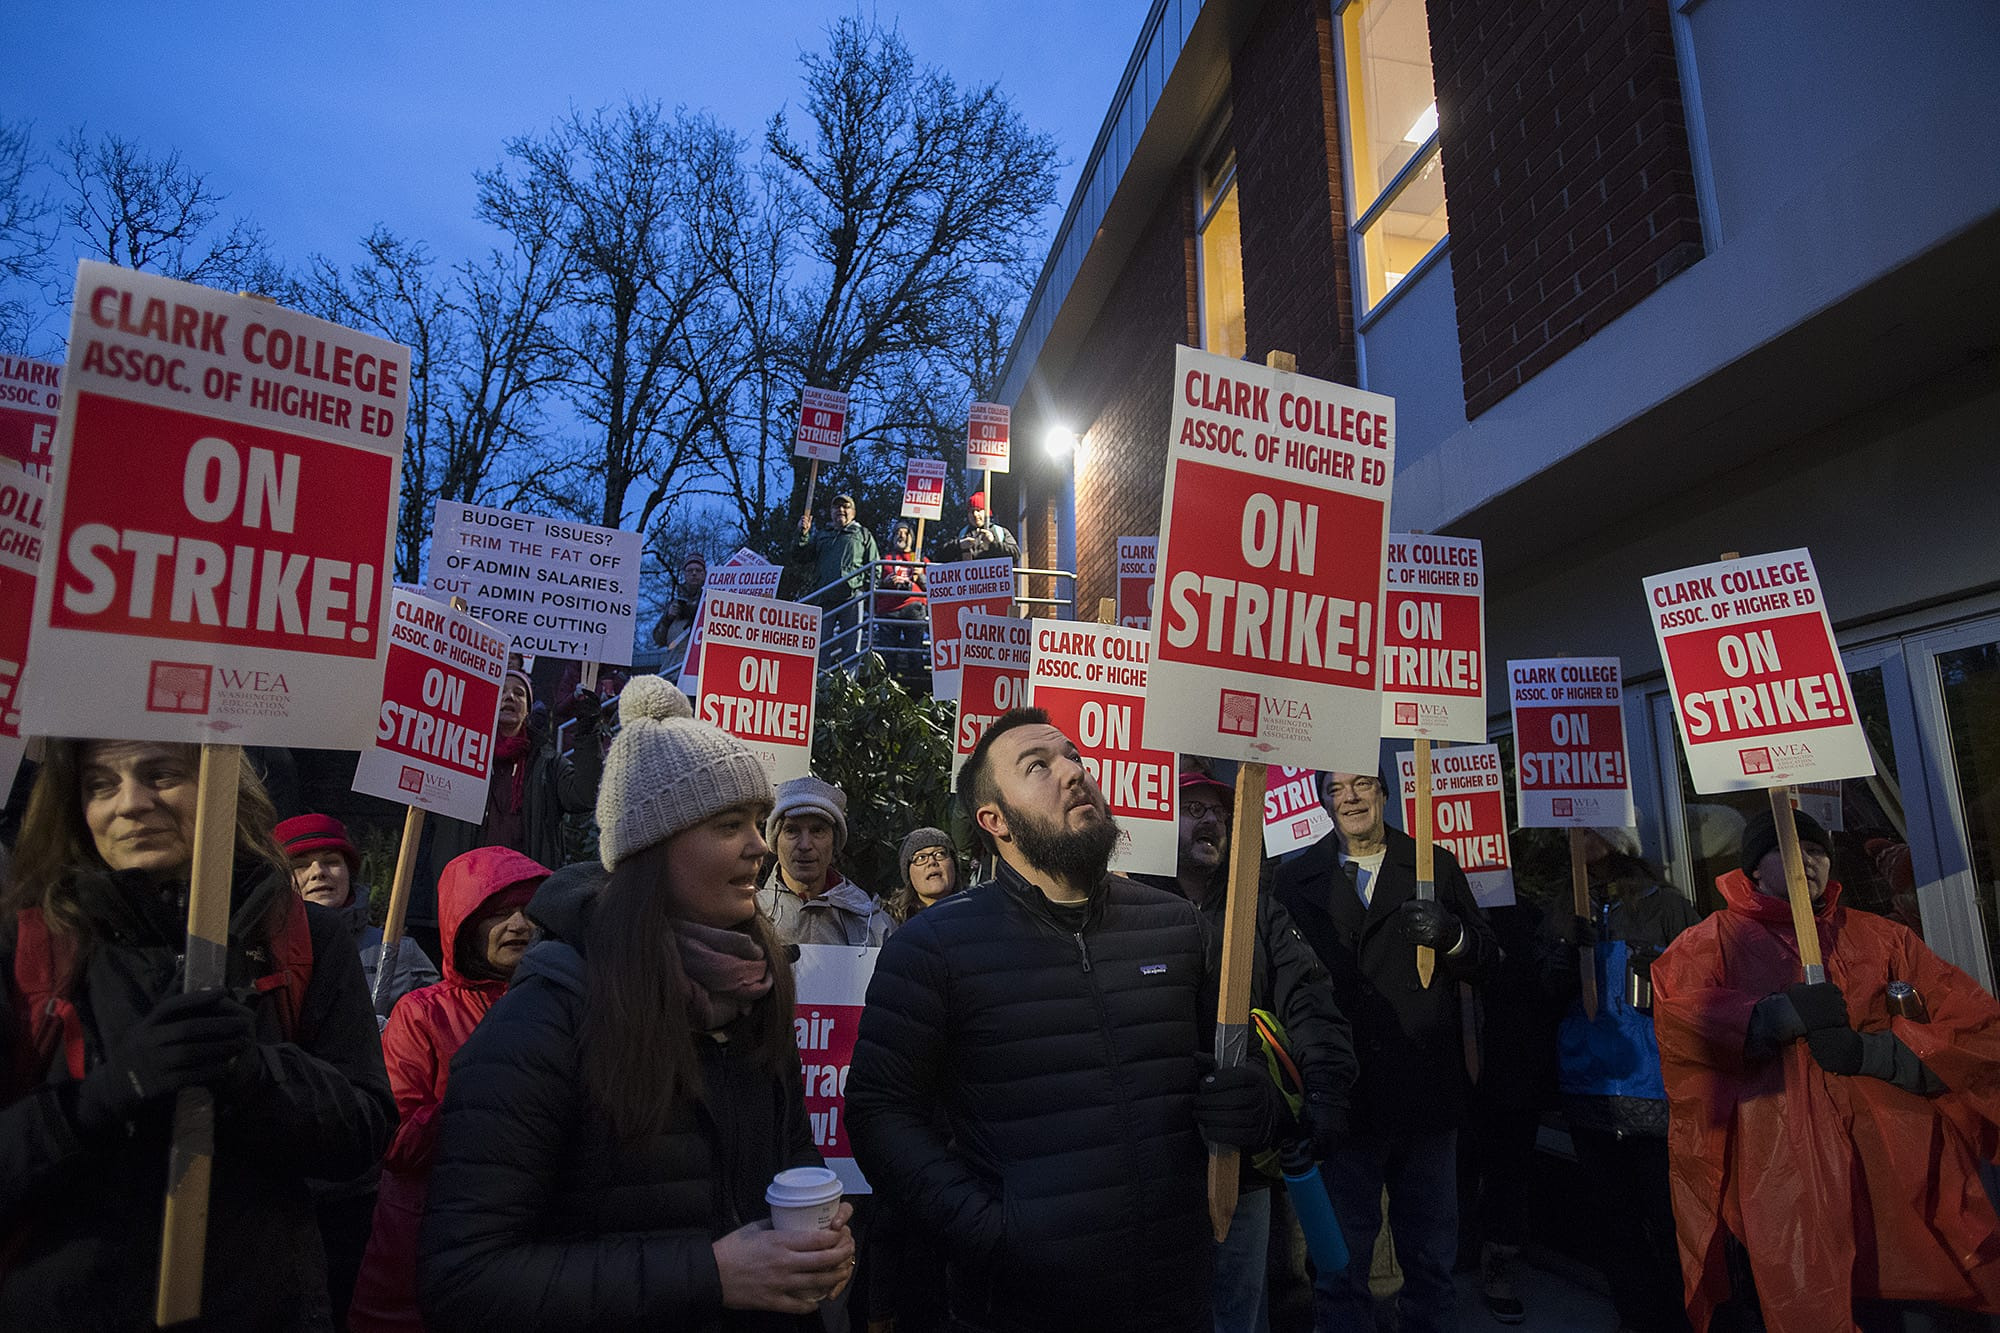 Dozens of Clark College faculty members gather at Baird Hall to chant outside the Board of Trustees meeting while on strike Monday morning, Jan. 13, 2020. (Amanda Cowan/The Columbian)